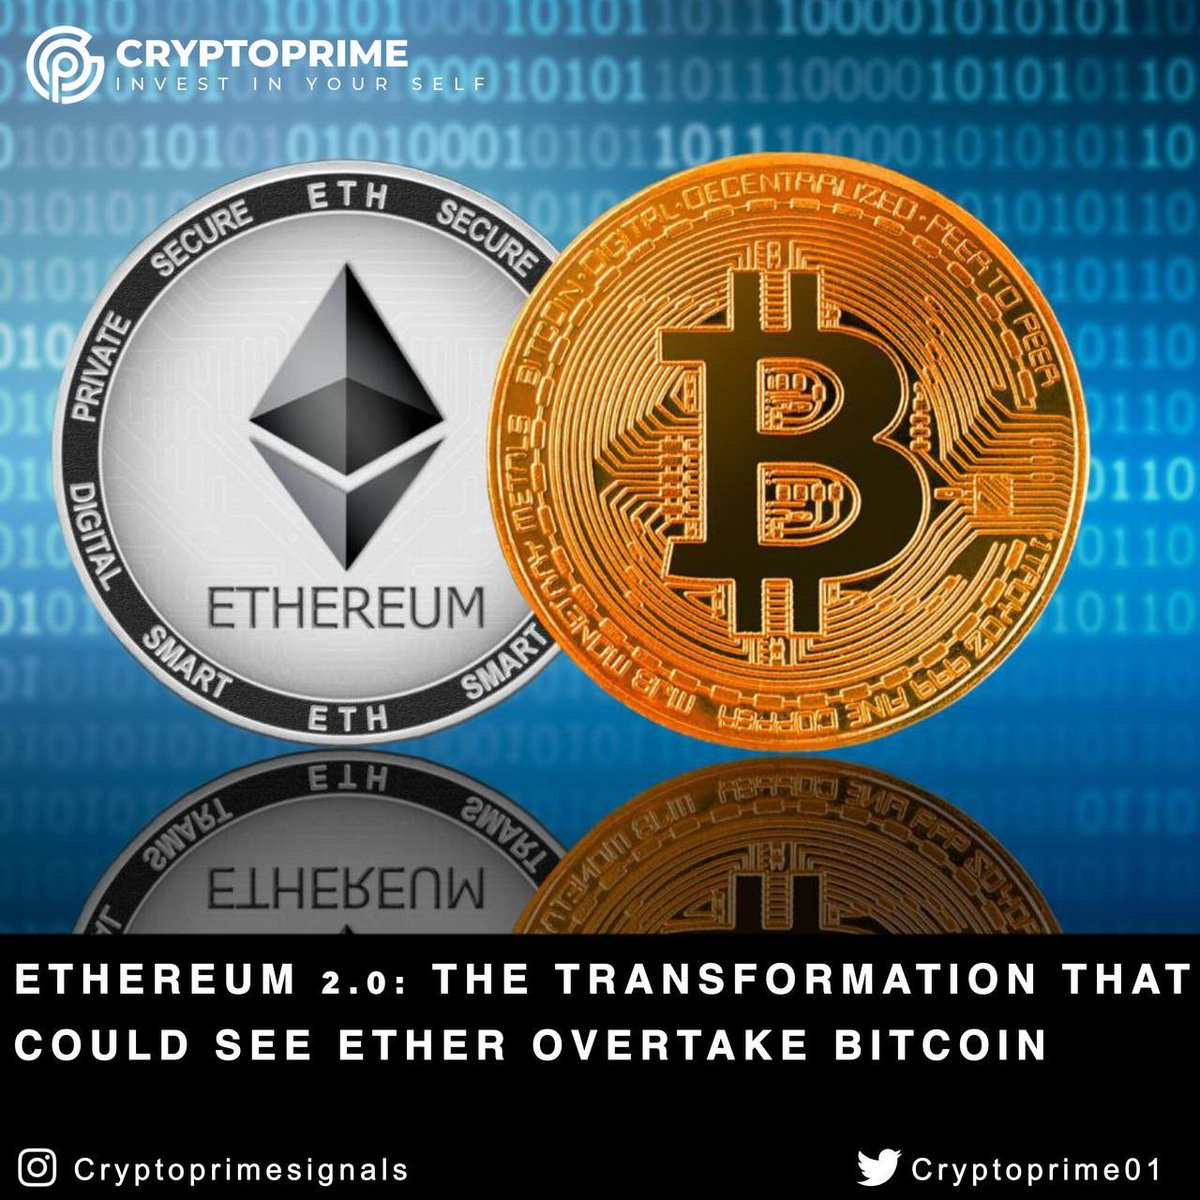 Ethereum 2.0: The transformation that could see ether overtake bitcoin  Read More:   #cryptocurrency #bitcoin #blockchain #crypto #btc #ico #ethereum #wallet #airdrop #cryptocurrencynews #cryptoexchange #trading #cryptotrading #love #followback #Twitterers